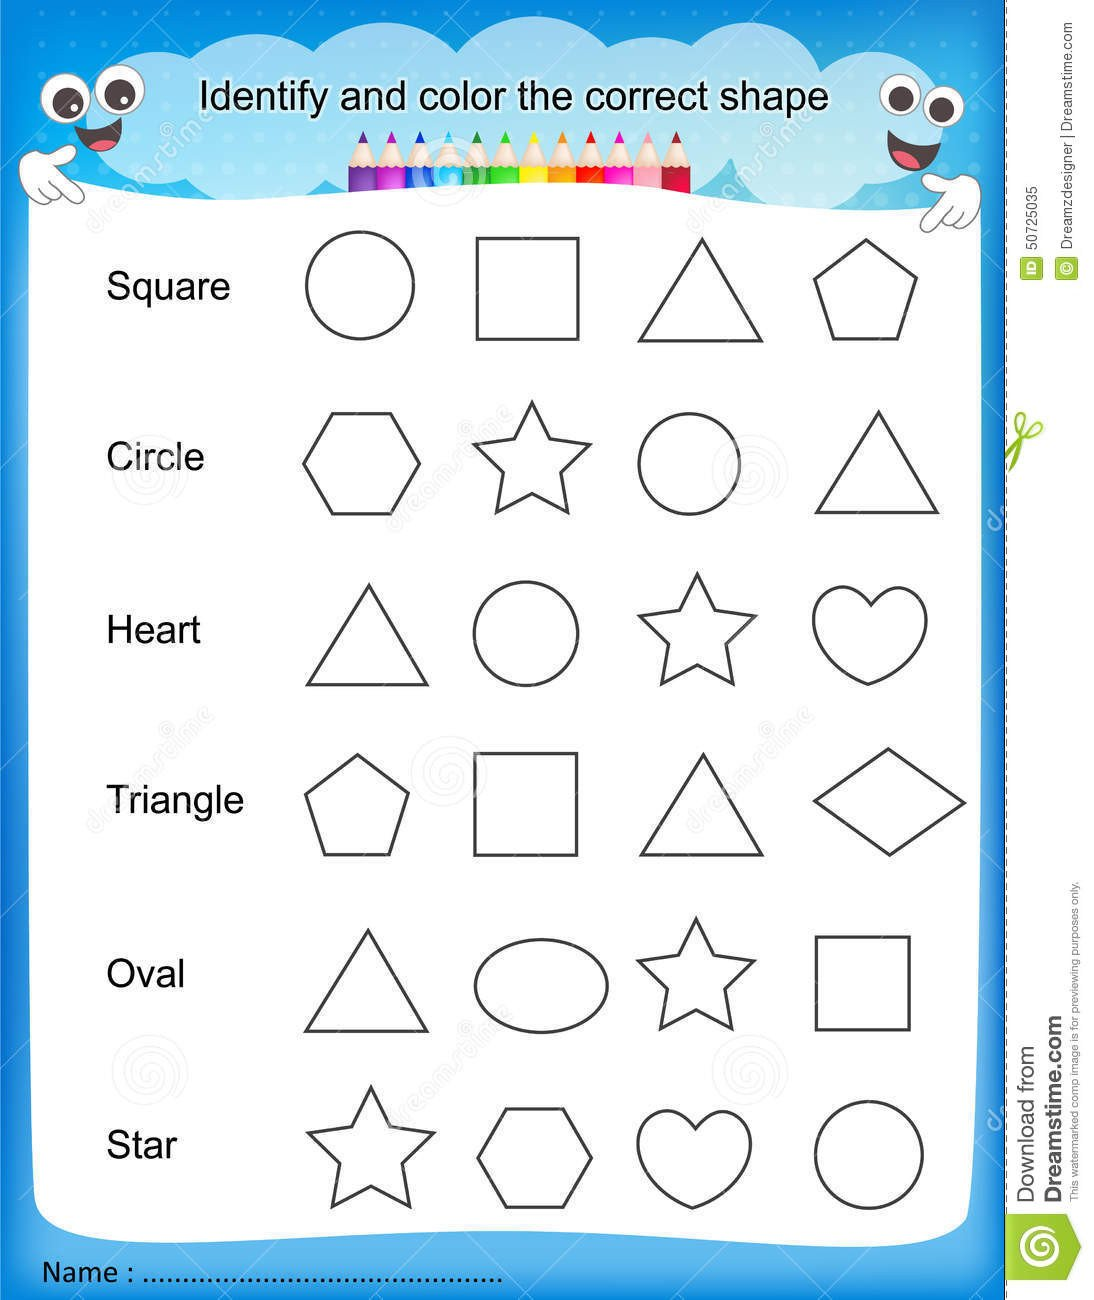 Identifying Shapes Worksheets Identify and Color the Correct Shape Worksheet Stock Vector